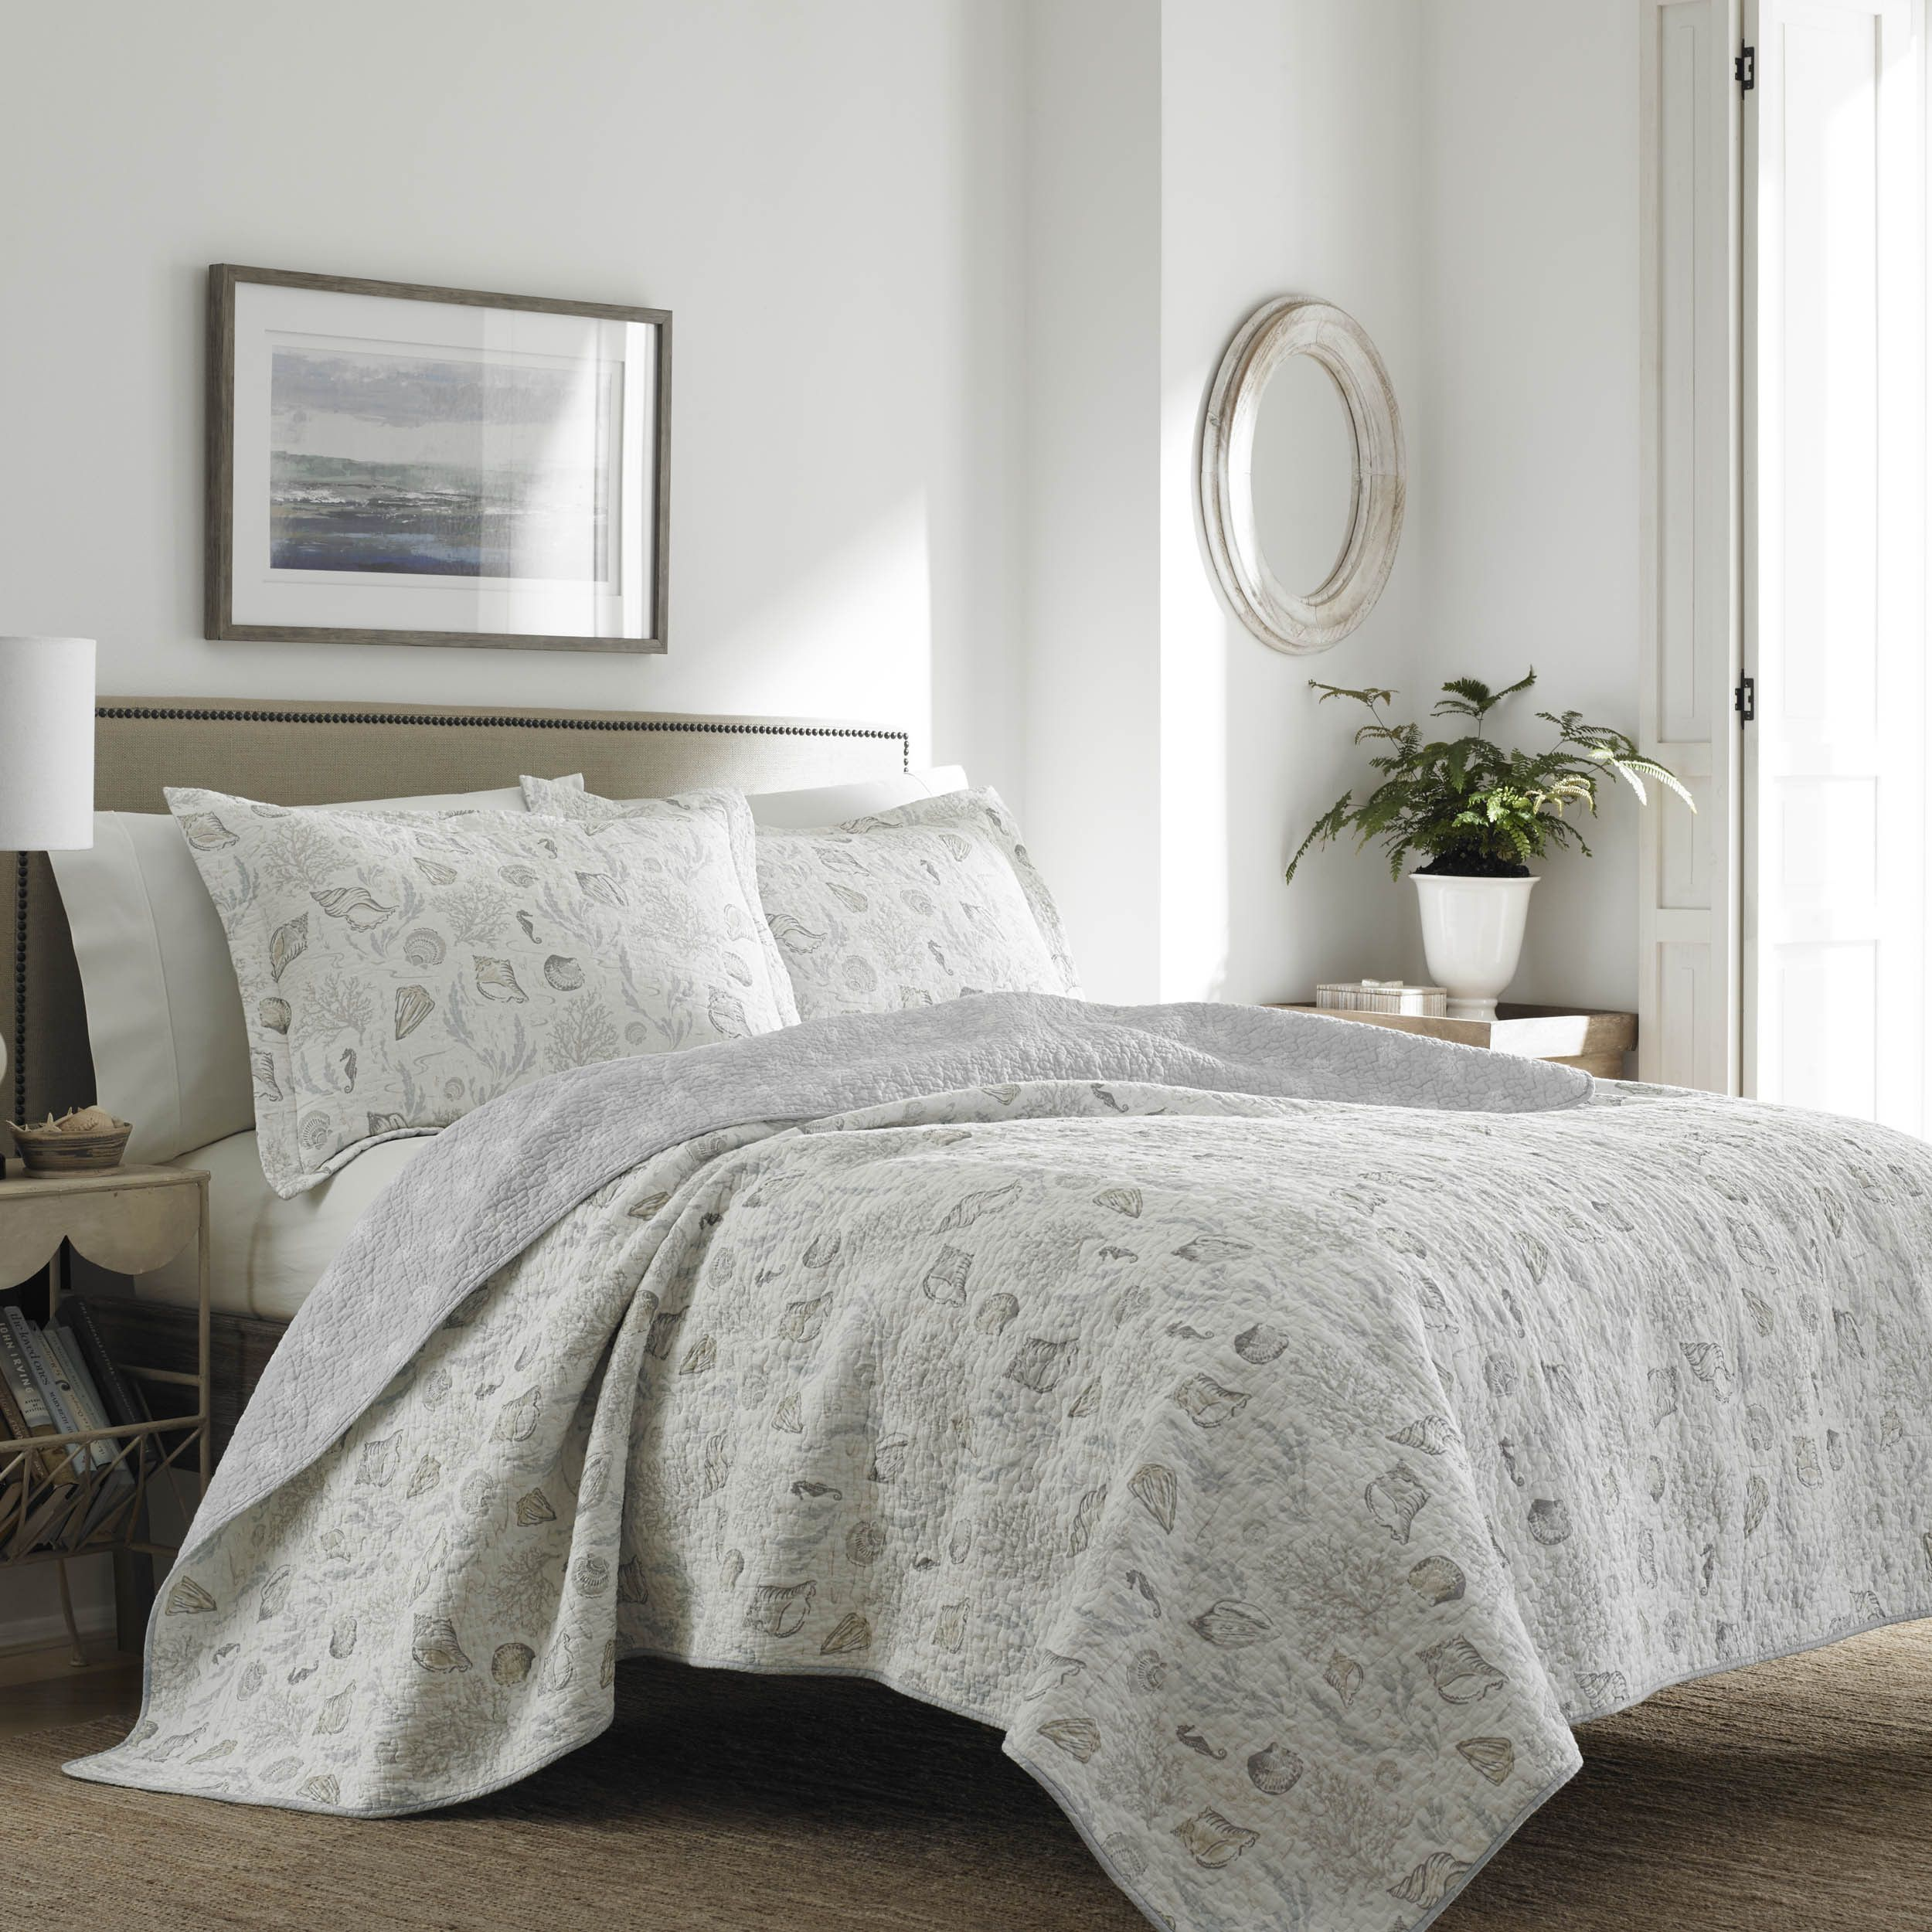 Online Shopping Bedding Furniture Electronics Jewelry Clothing More Bedding Sets Quilt Sets Laura Ashley